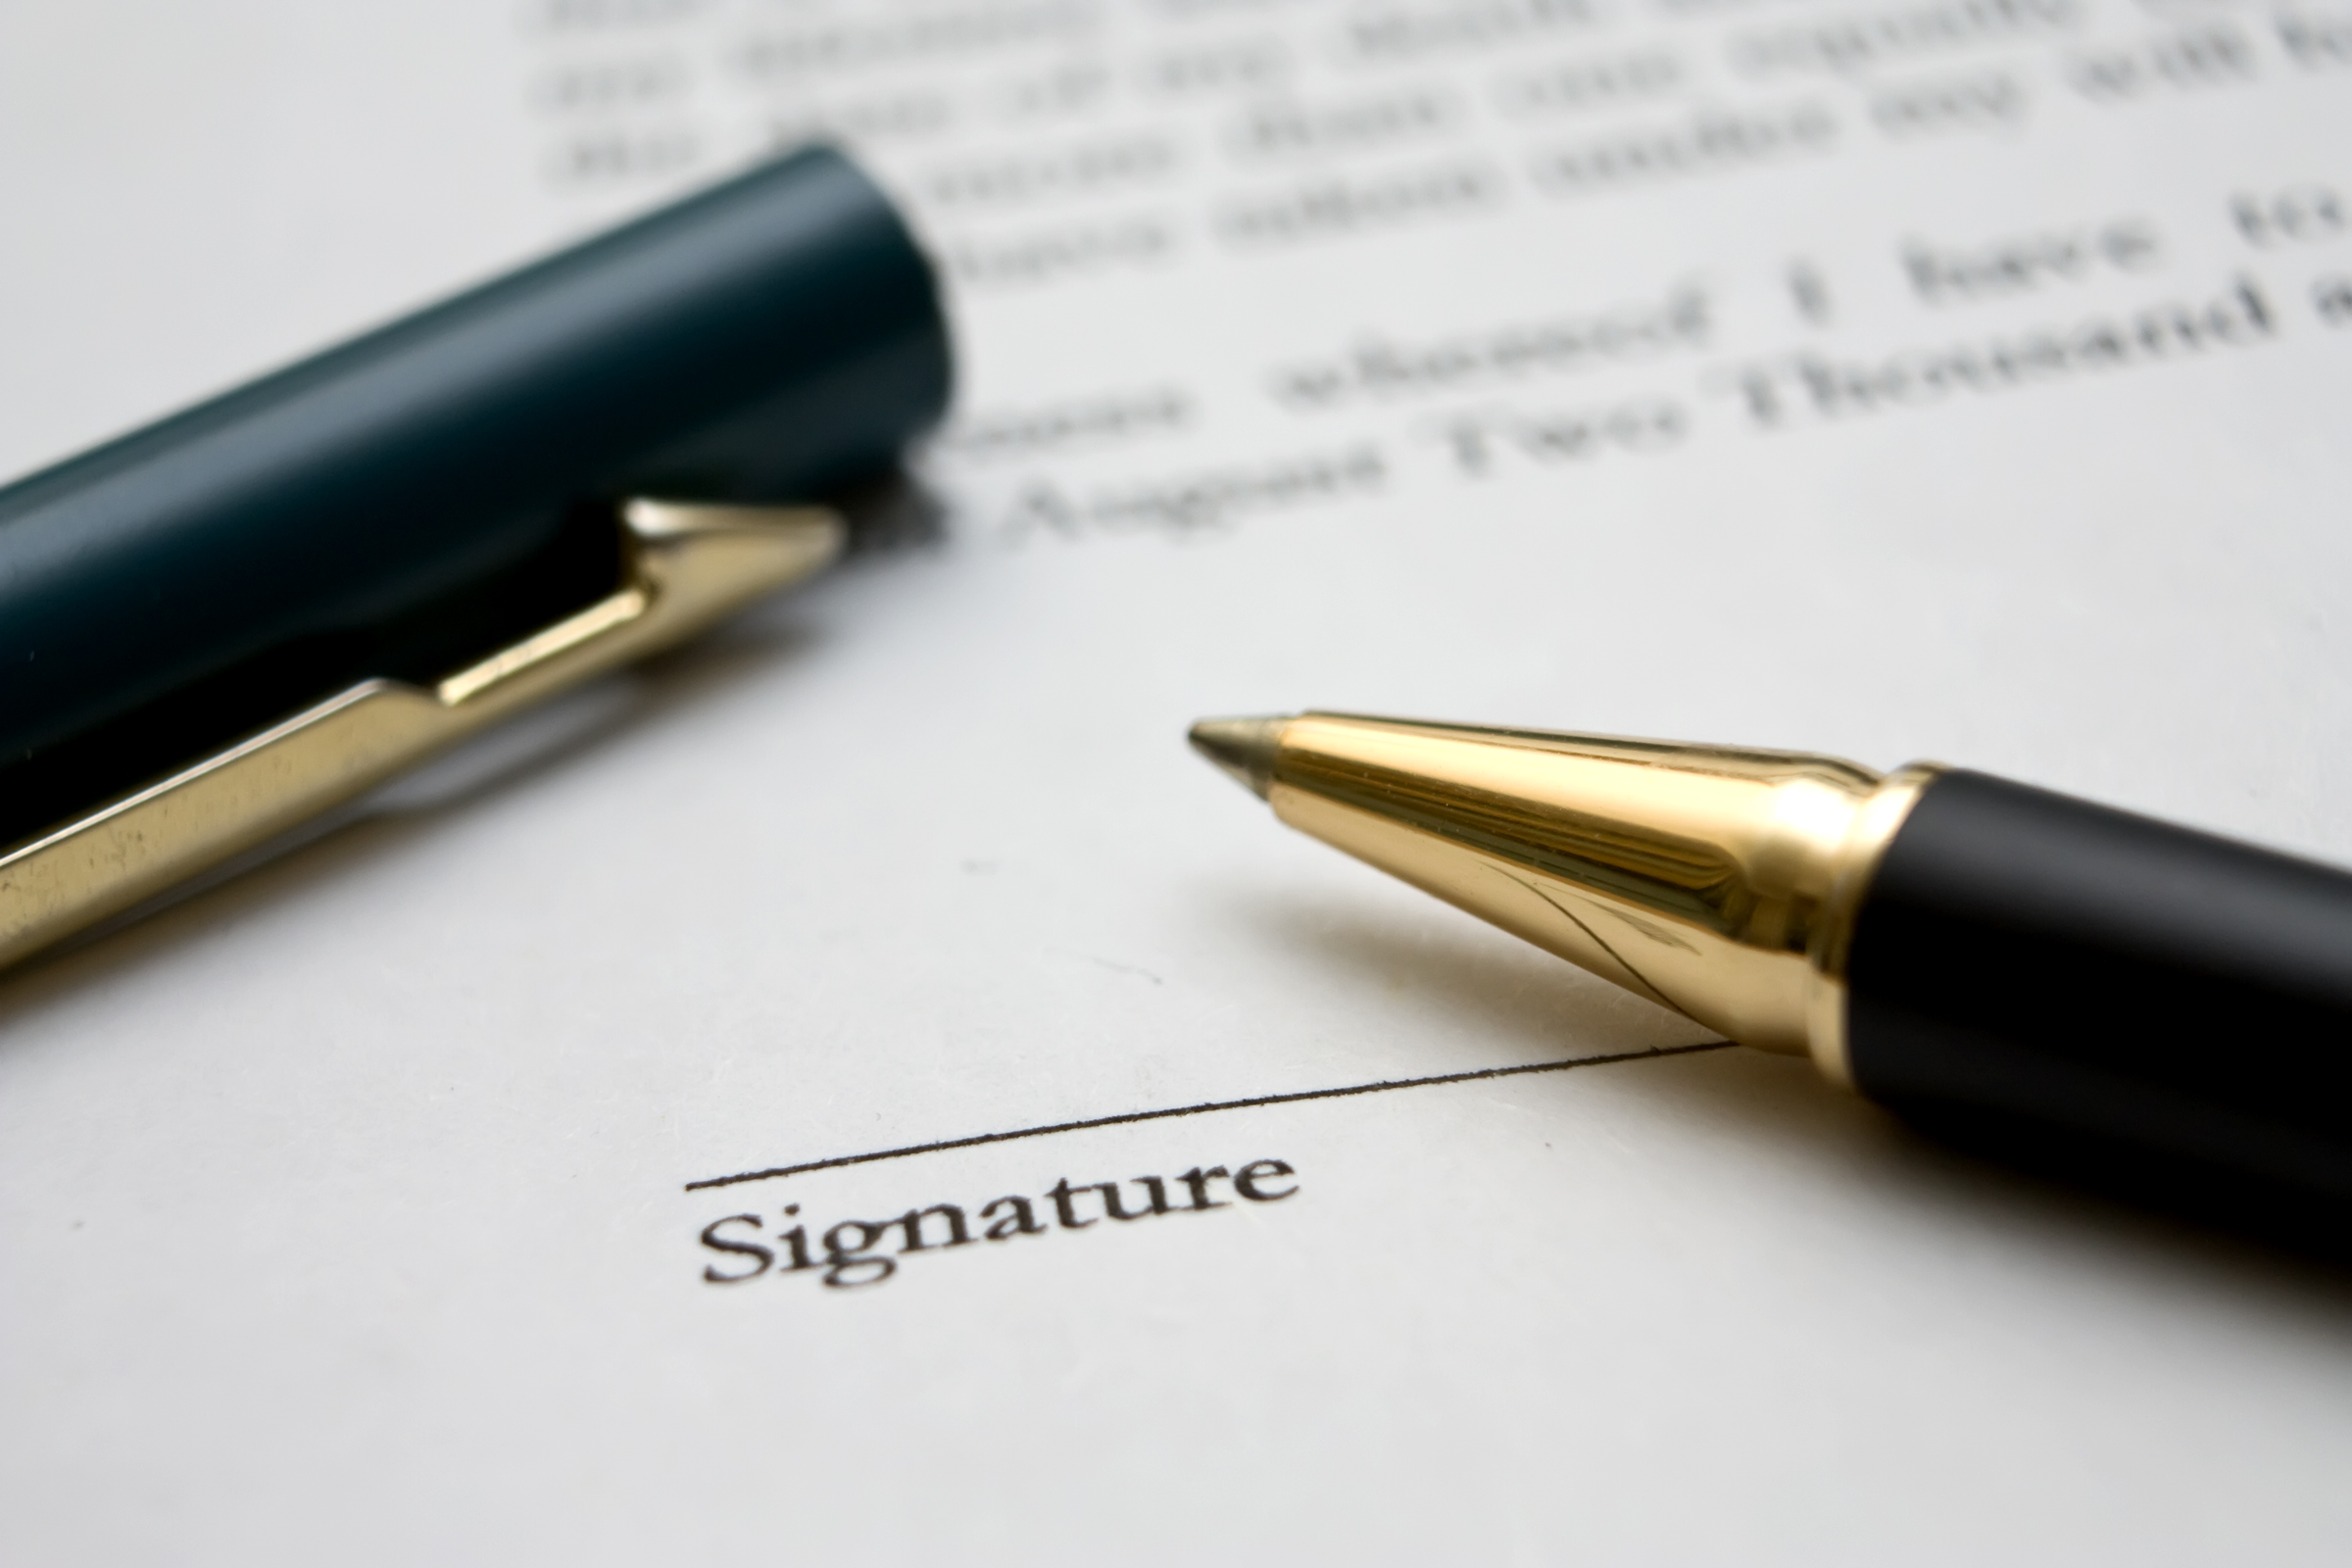 10 things you need to know that will make or break your contract